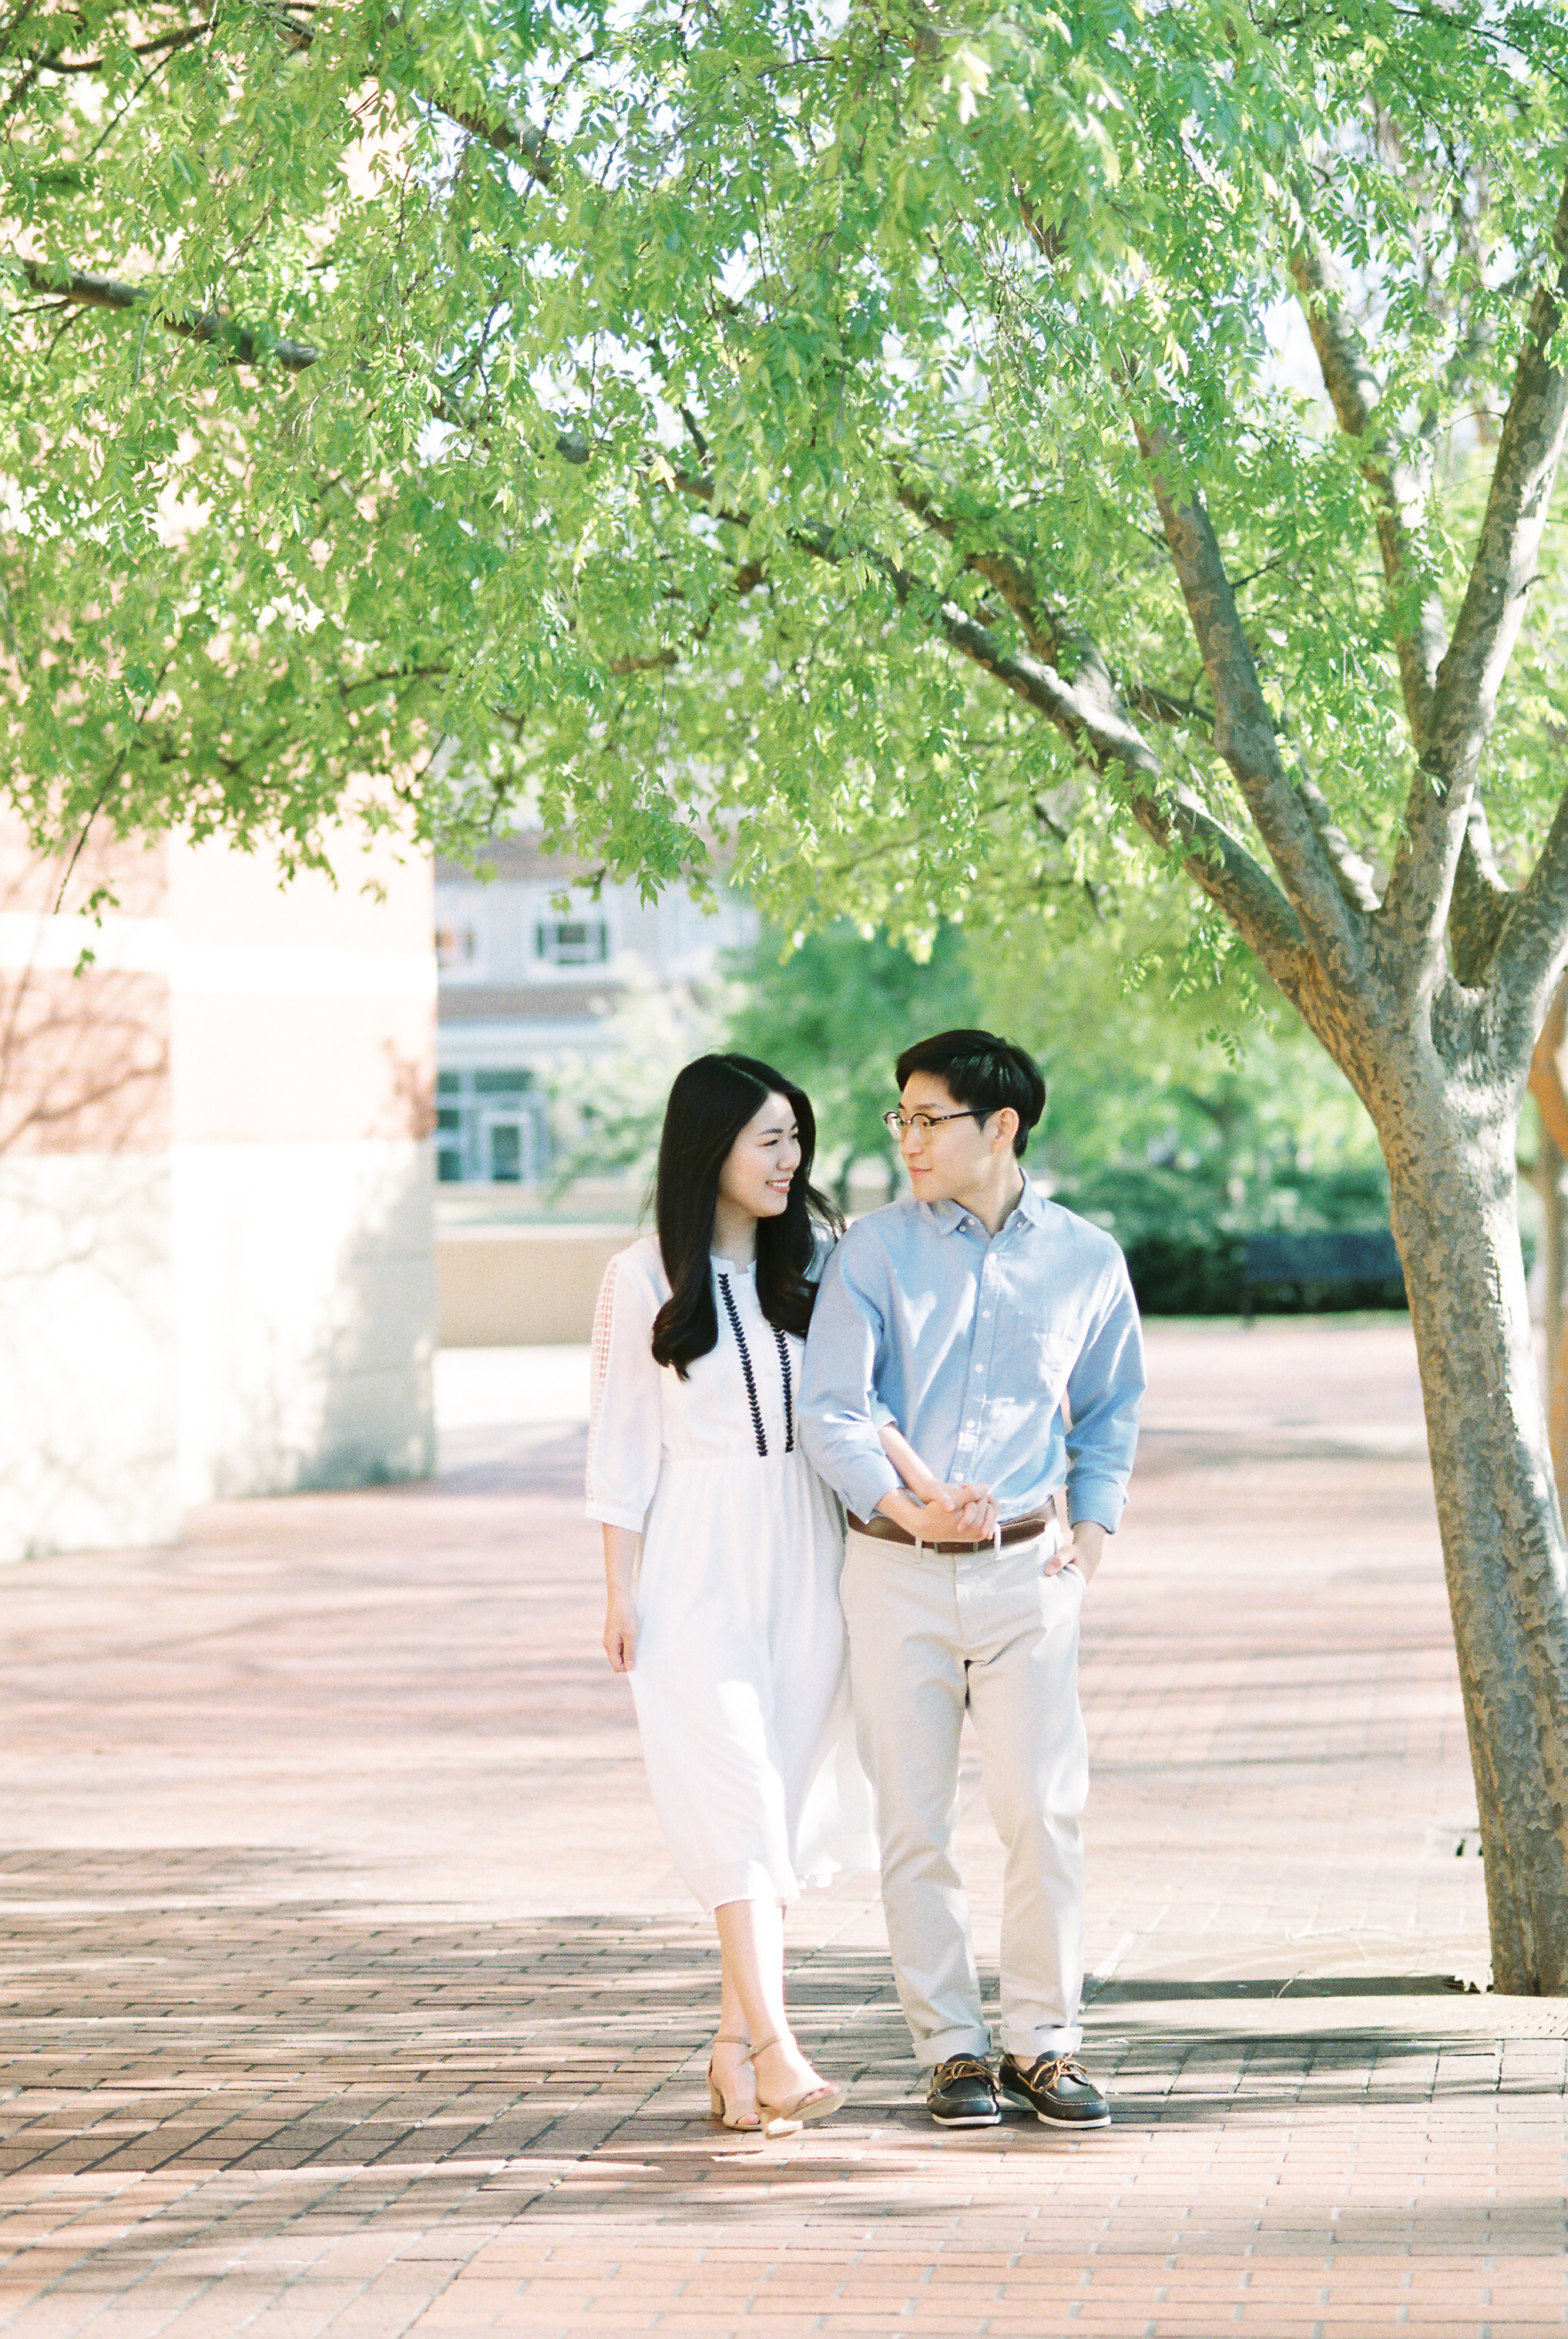 Renee_Steven_Film_Engagement_Riverwalk_Columbus_Georgia_Fallen_Photography-10.JPG